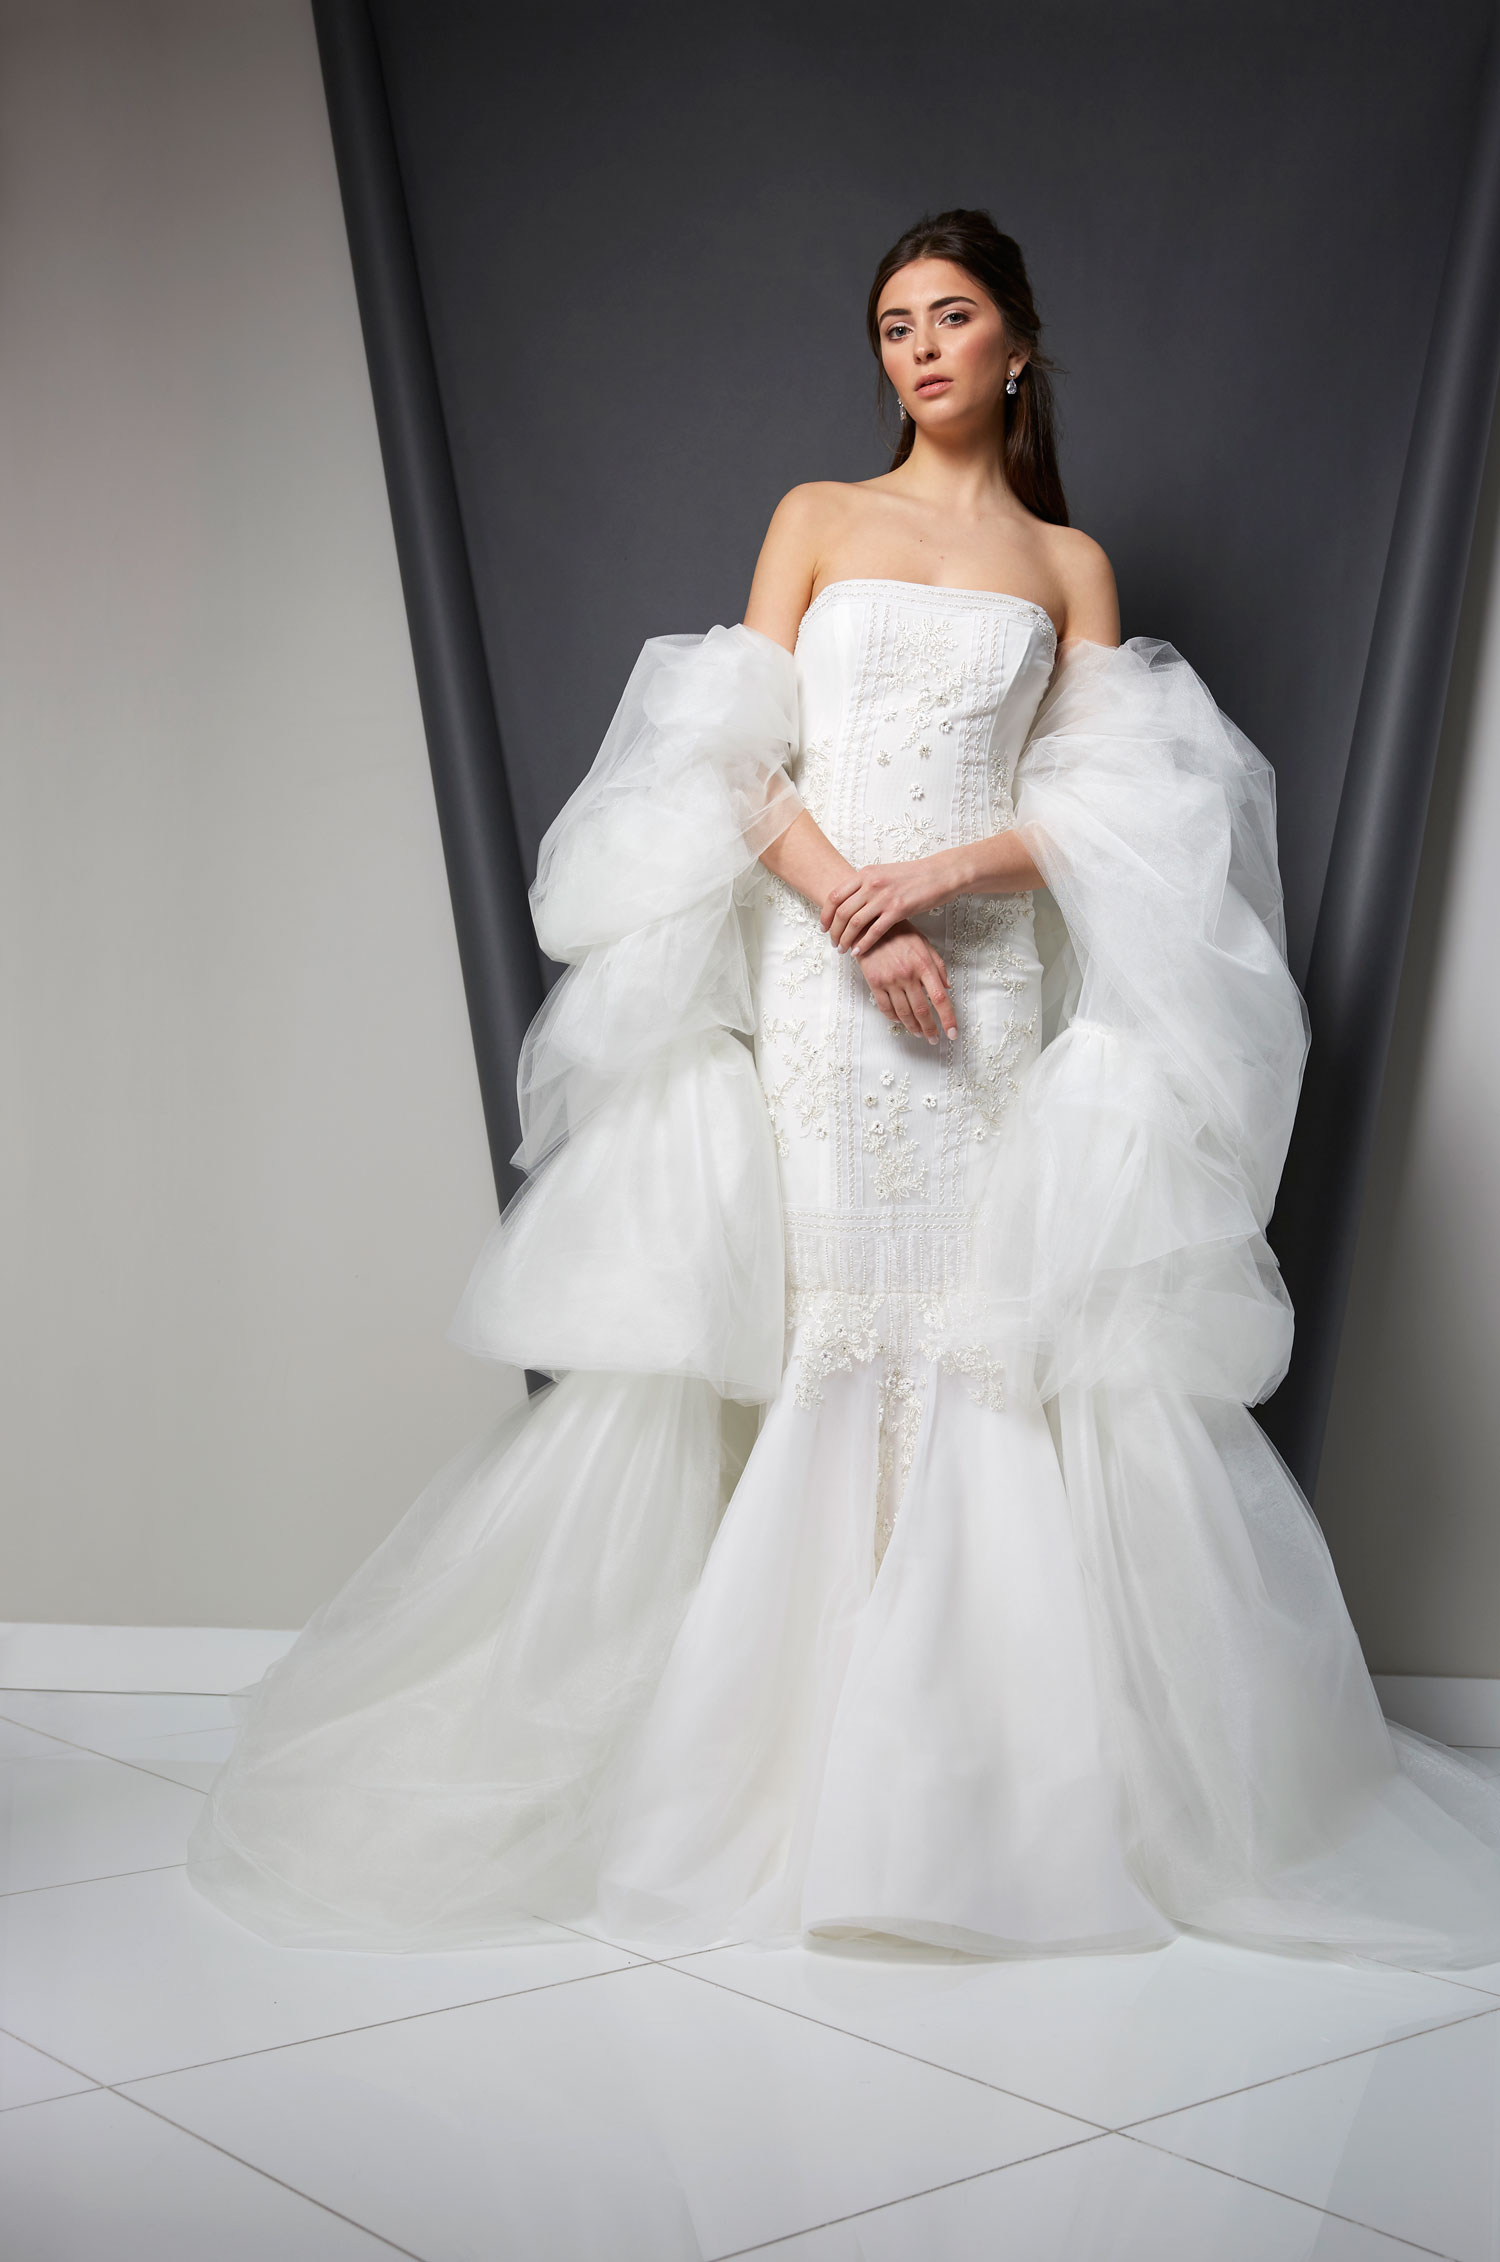 Randi Rahm wedding dress strapless with puffy statement sleeves